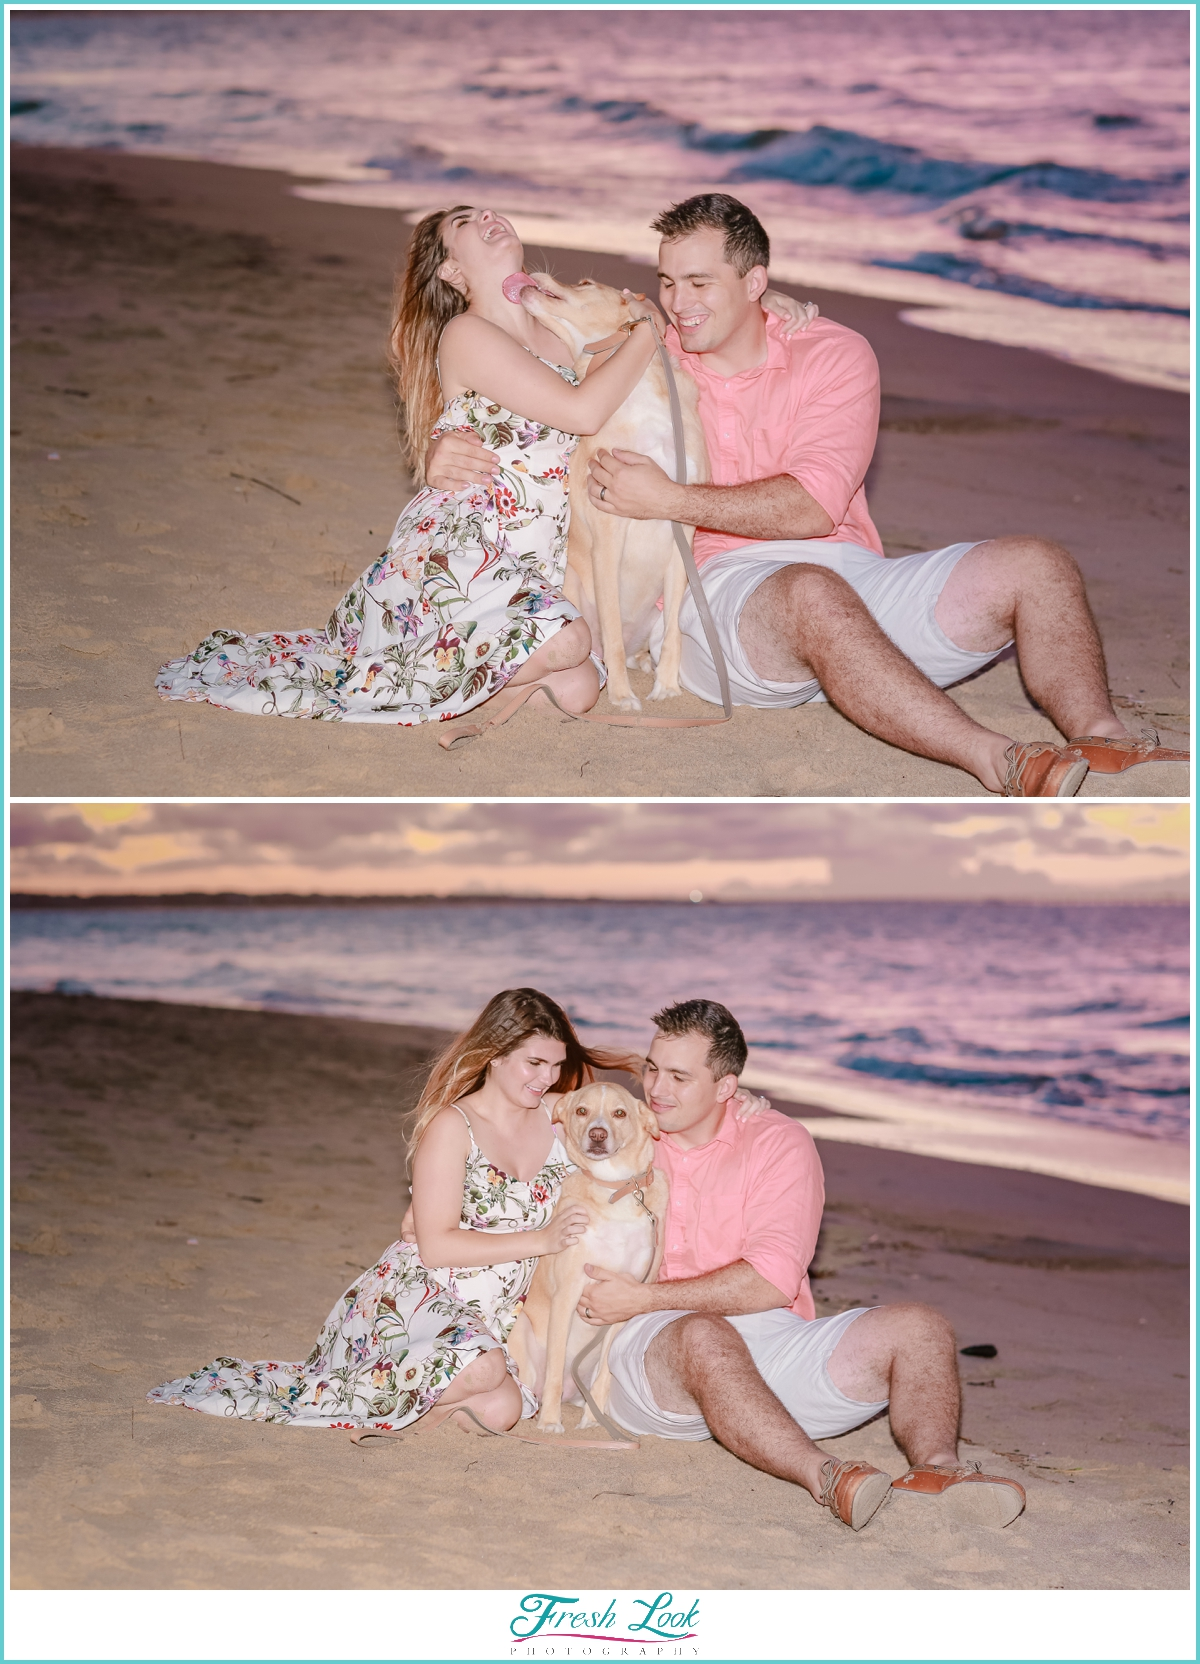 puppy kisses during photo shoot